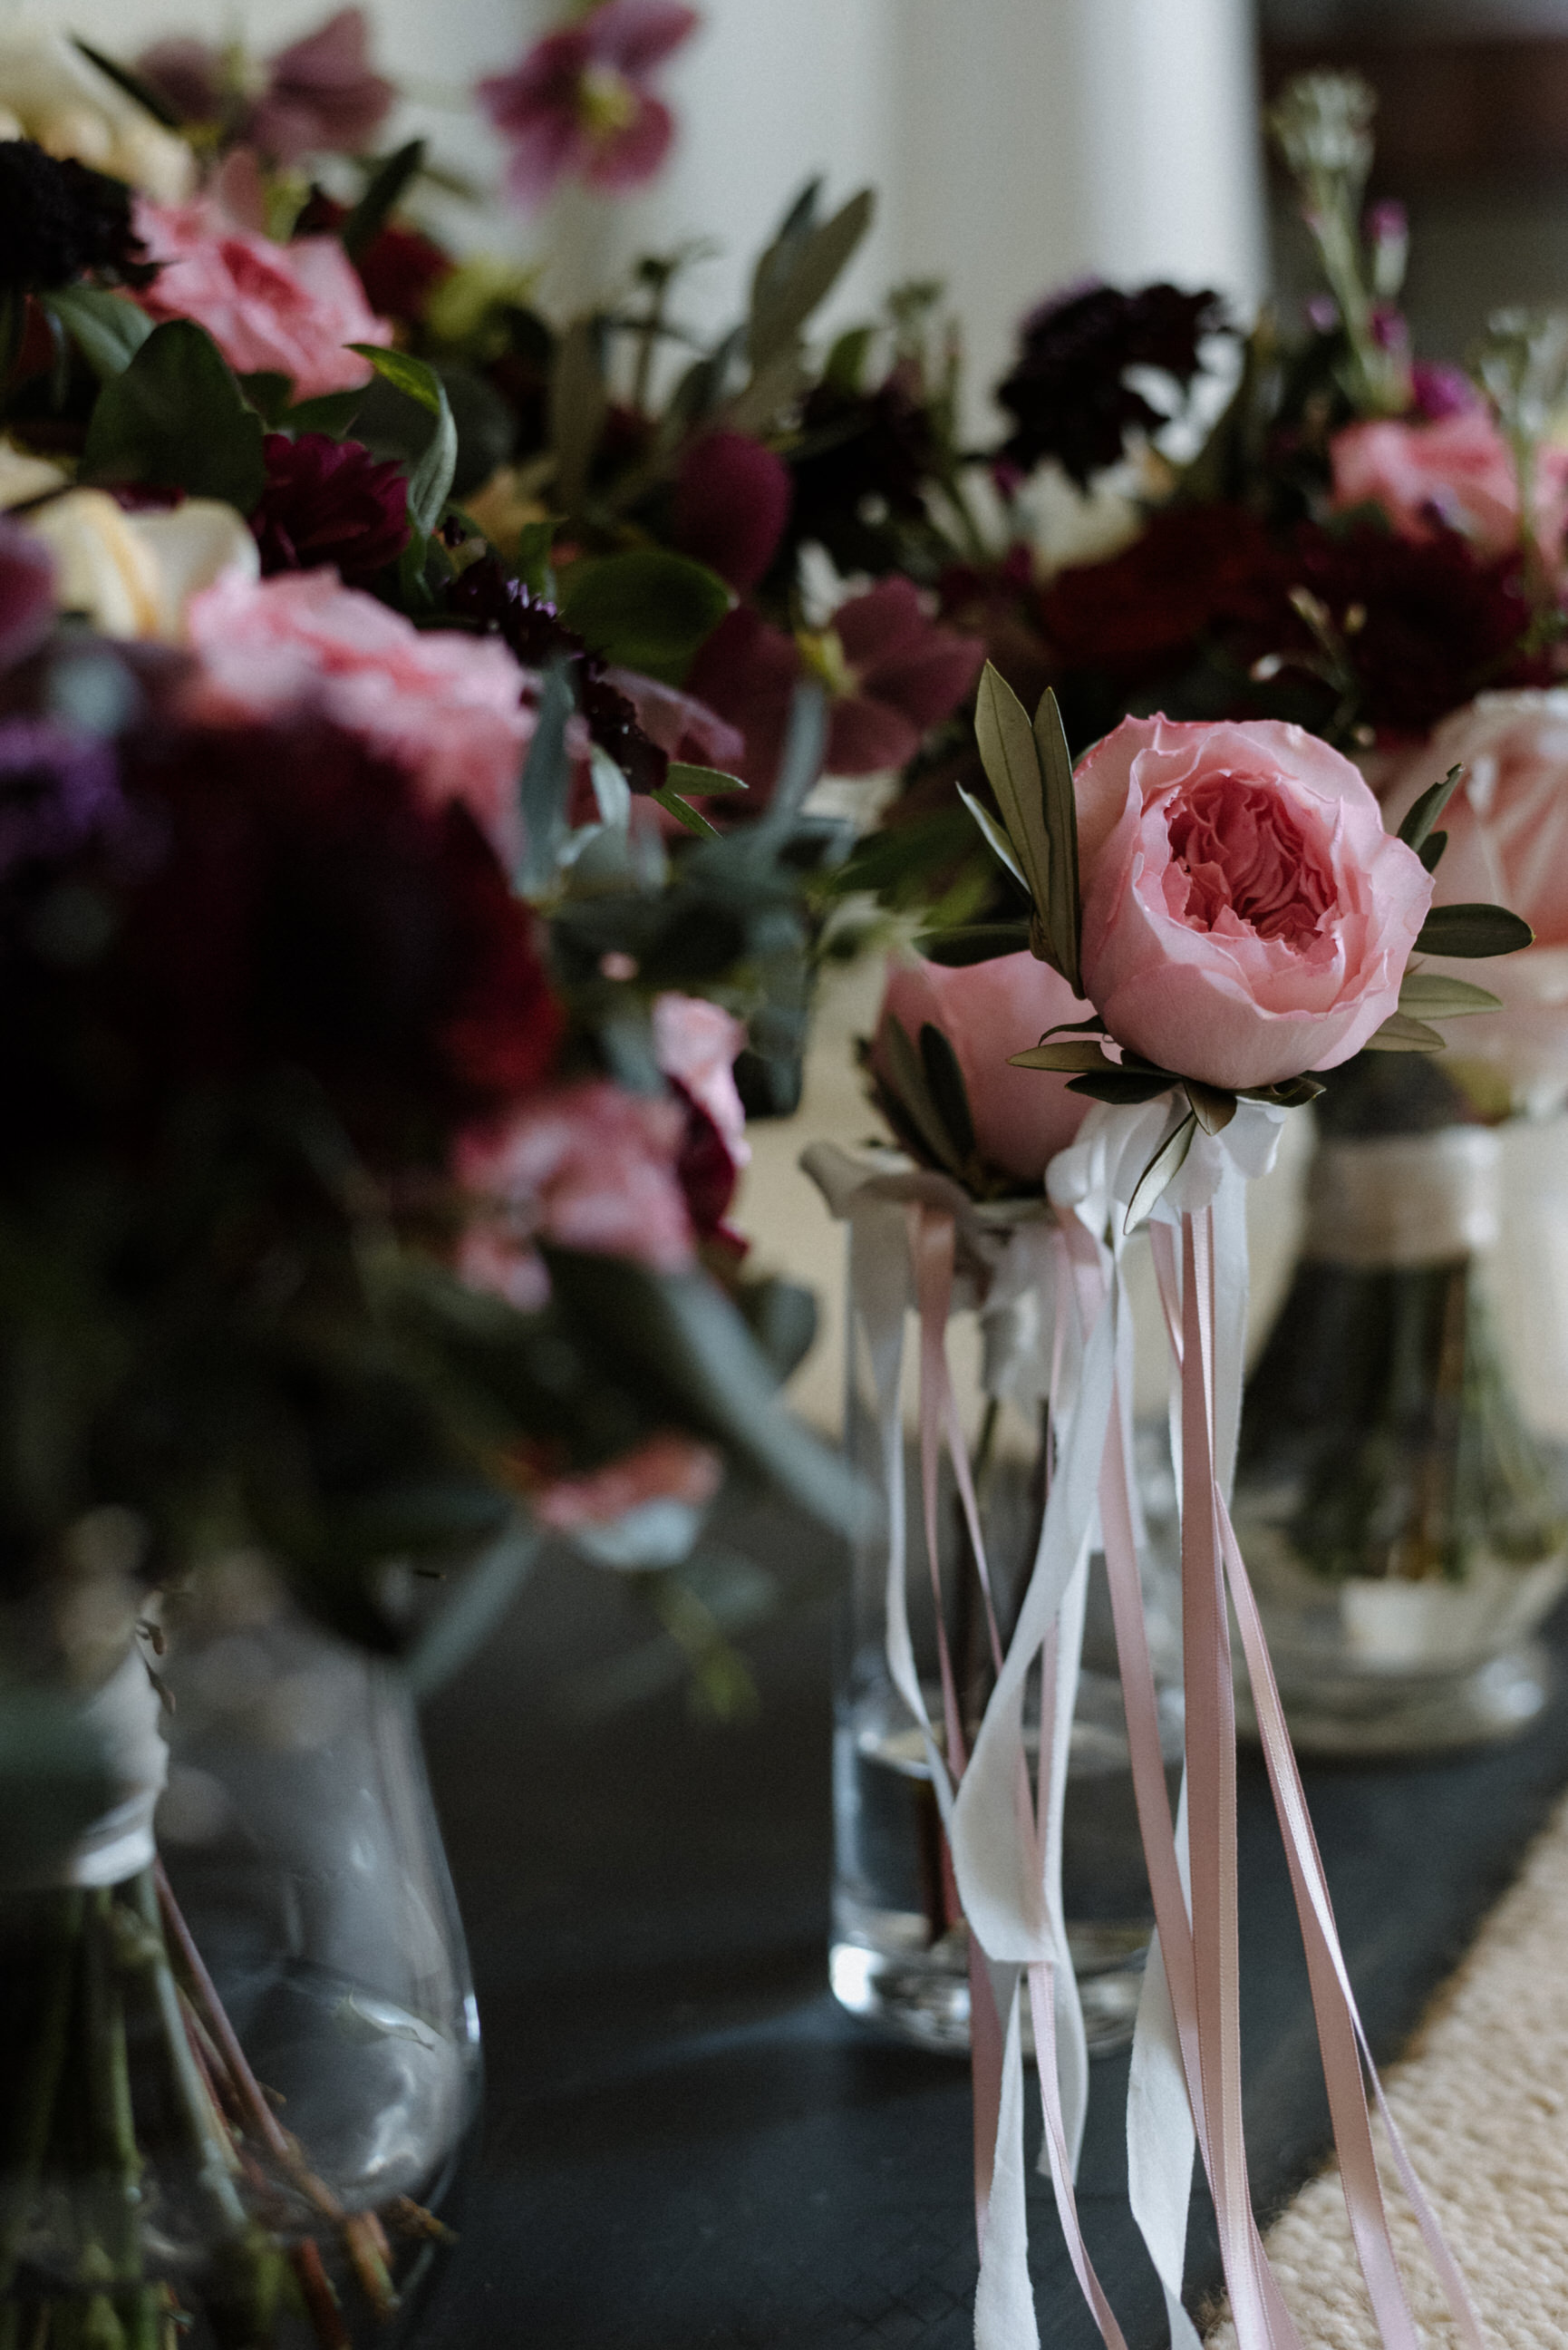 The Rosehip & berry florals drenagh chris copeland photography